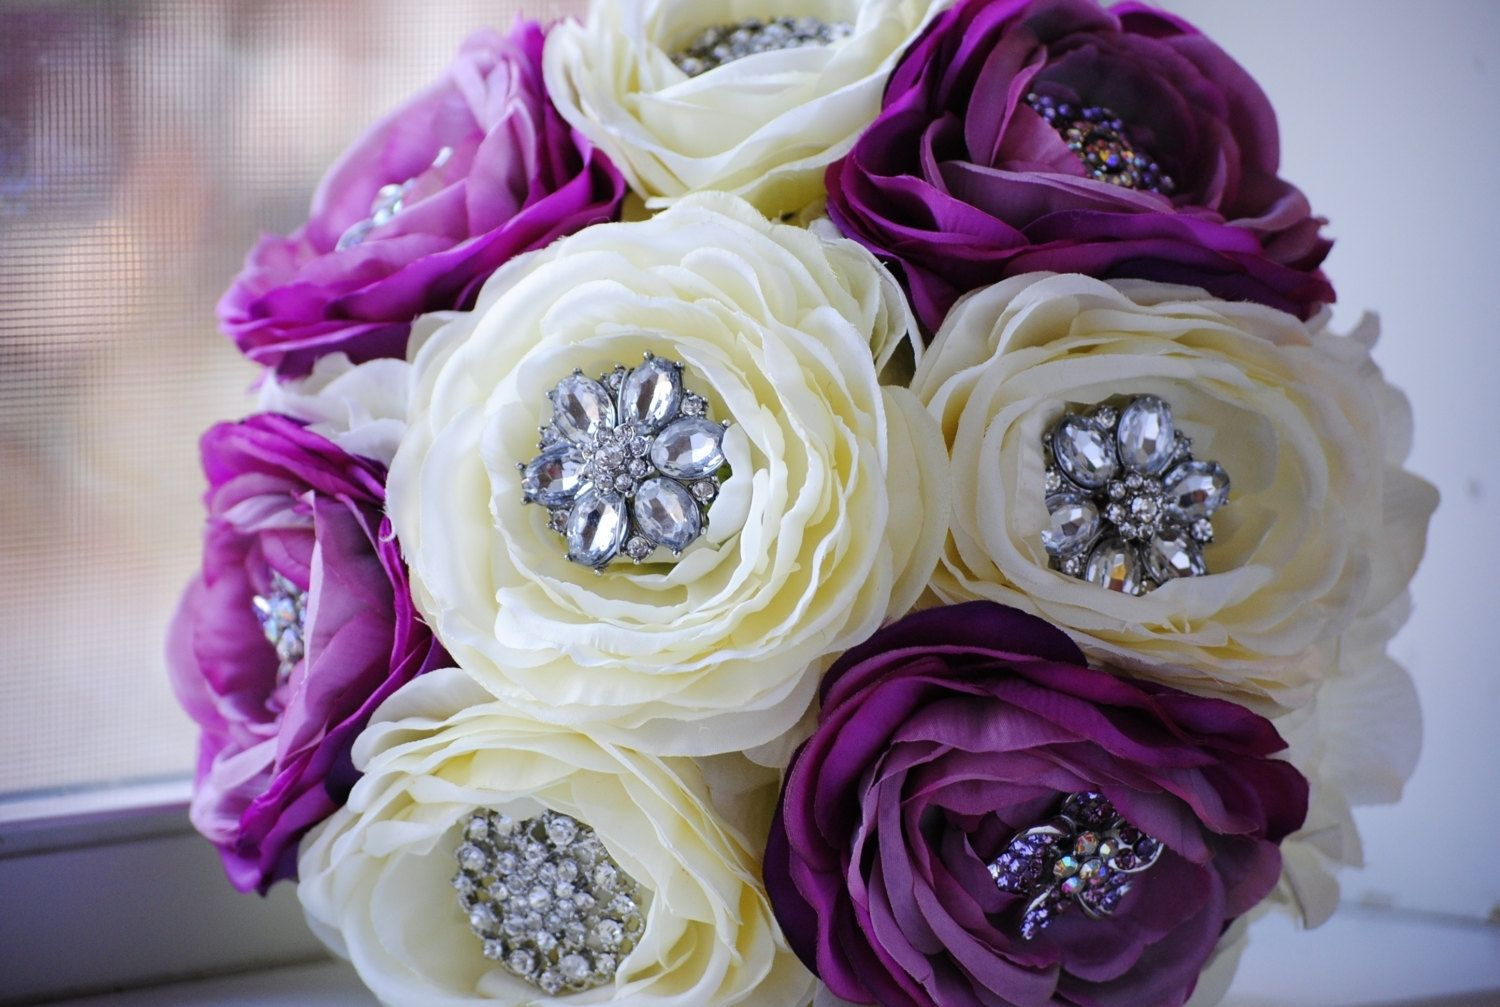 Handmade brooch bouquet with fabric flowers by brooch bouquets by handmade brooch bouquet with fabric flowers by brooch bouquets by nicolasa cicero custommade izmirmasajfo